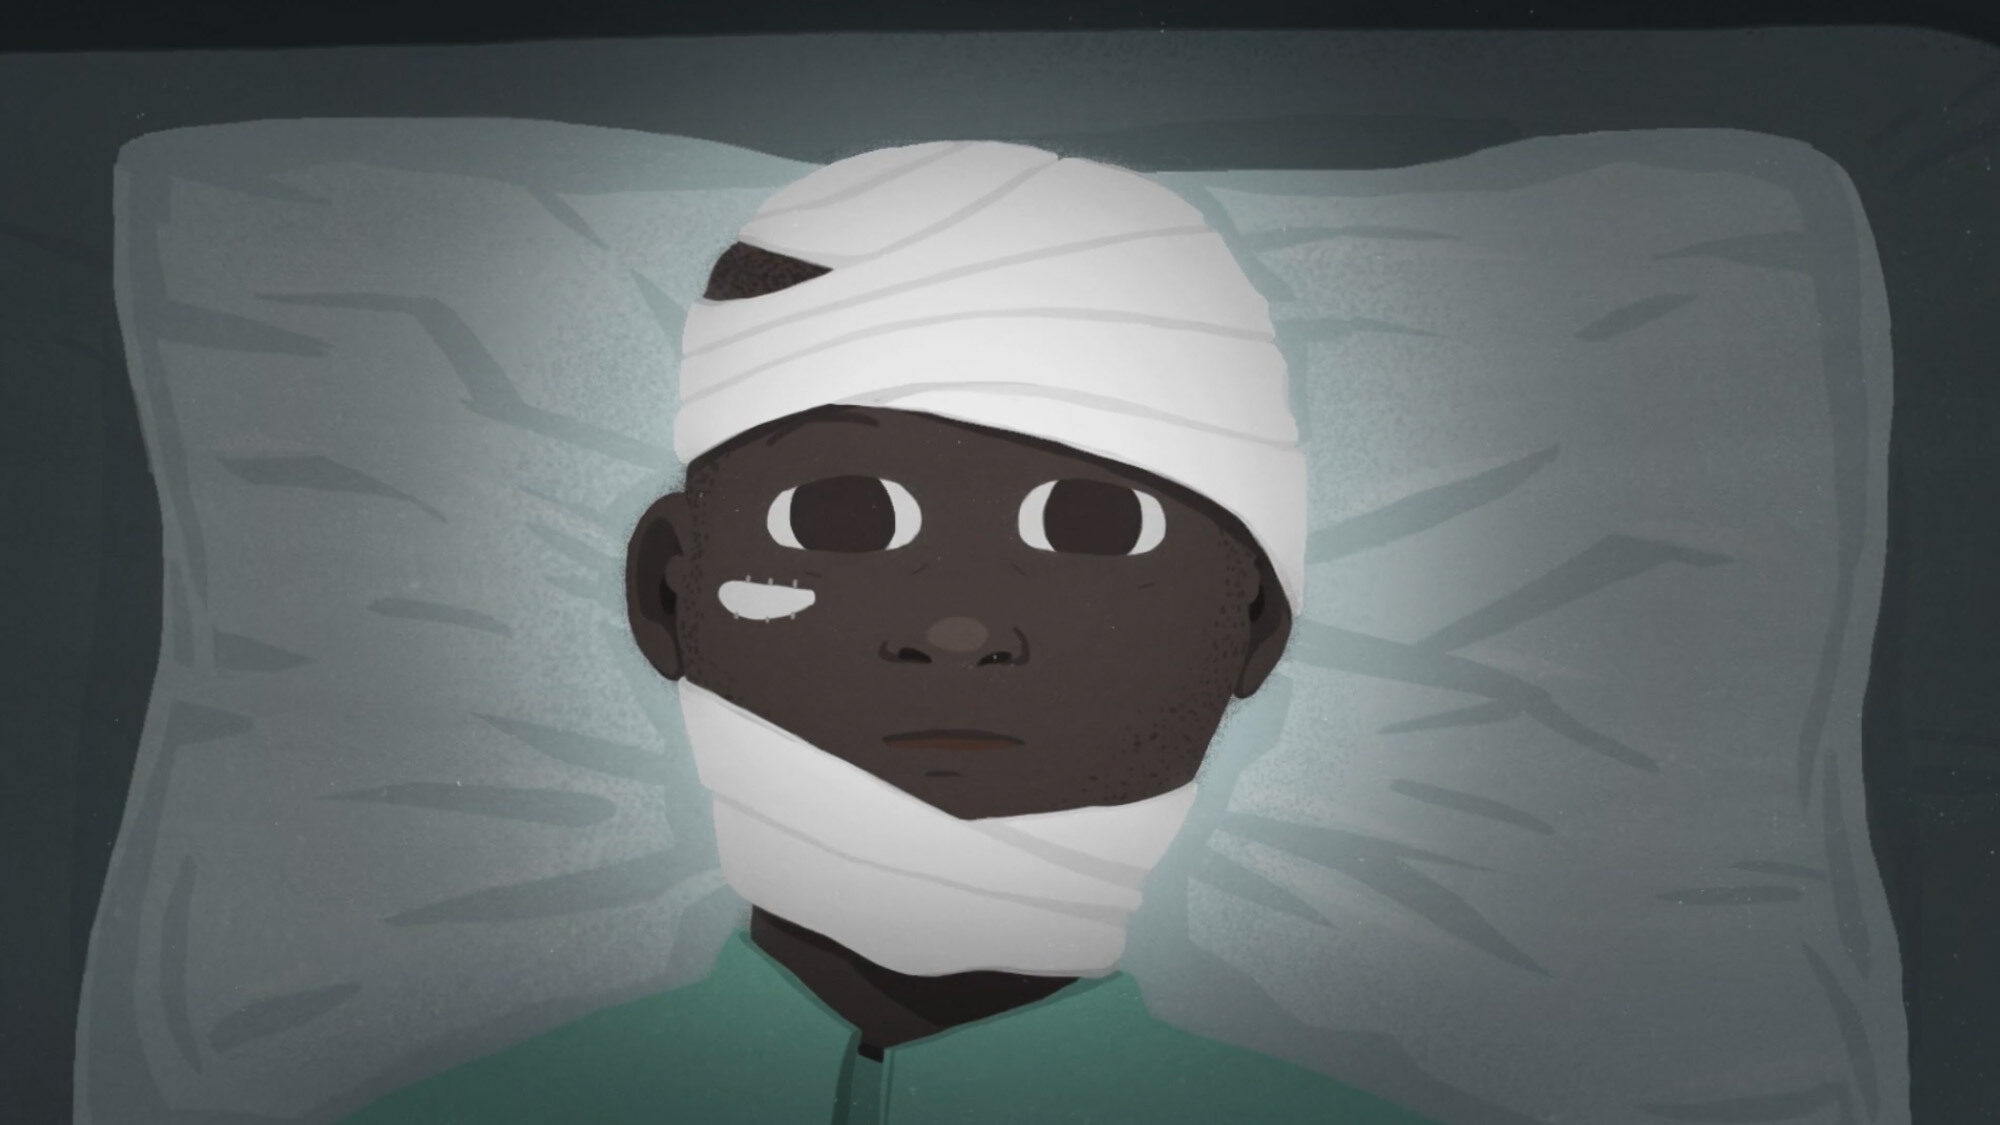 Illustration of a wounded veteran whose head is wrapped in bandages.